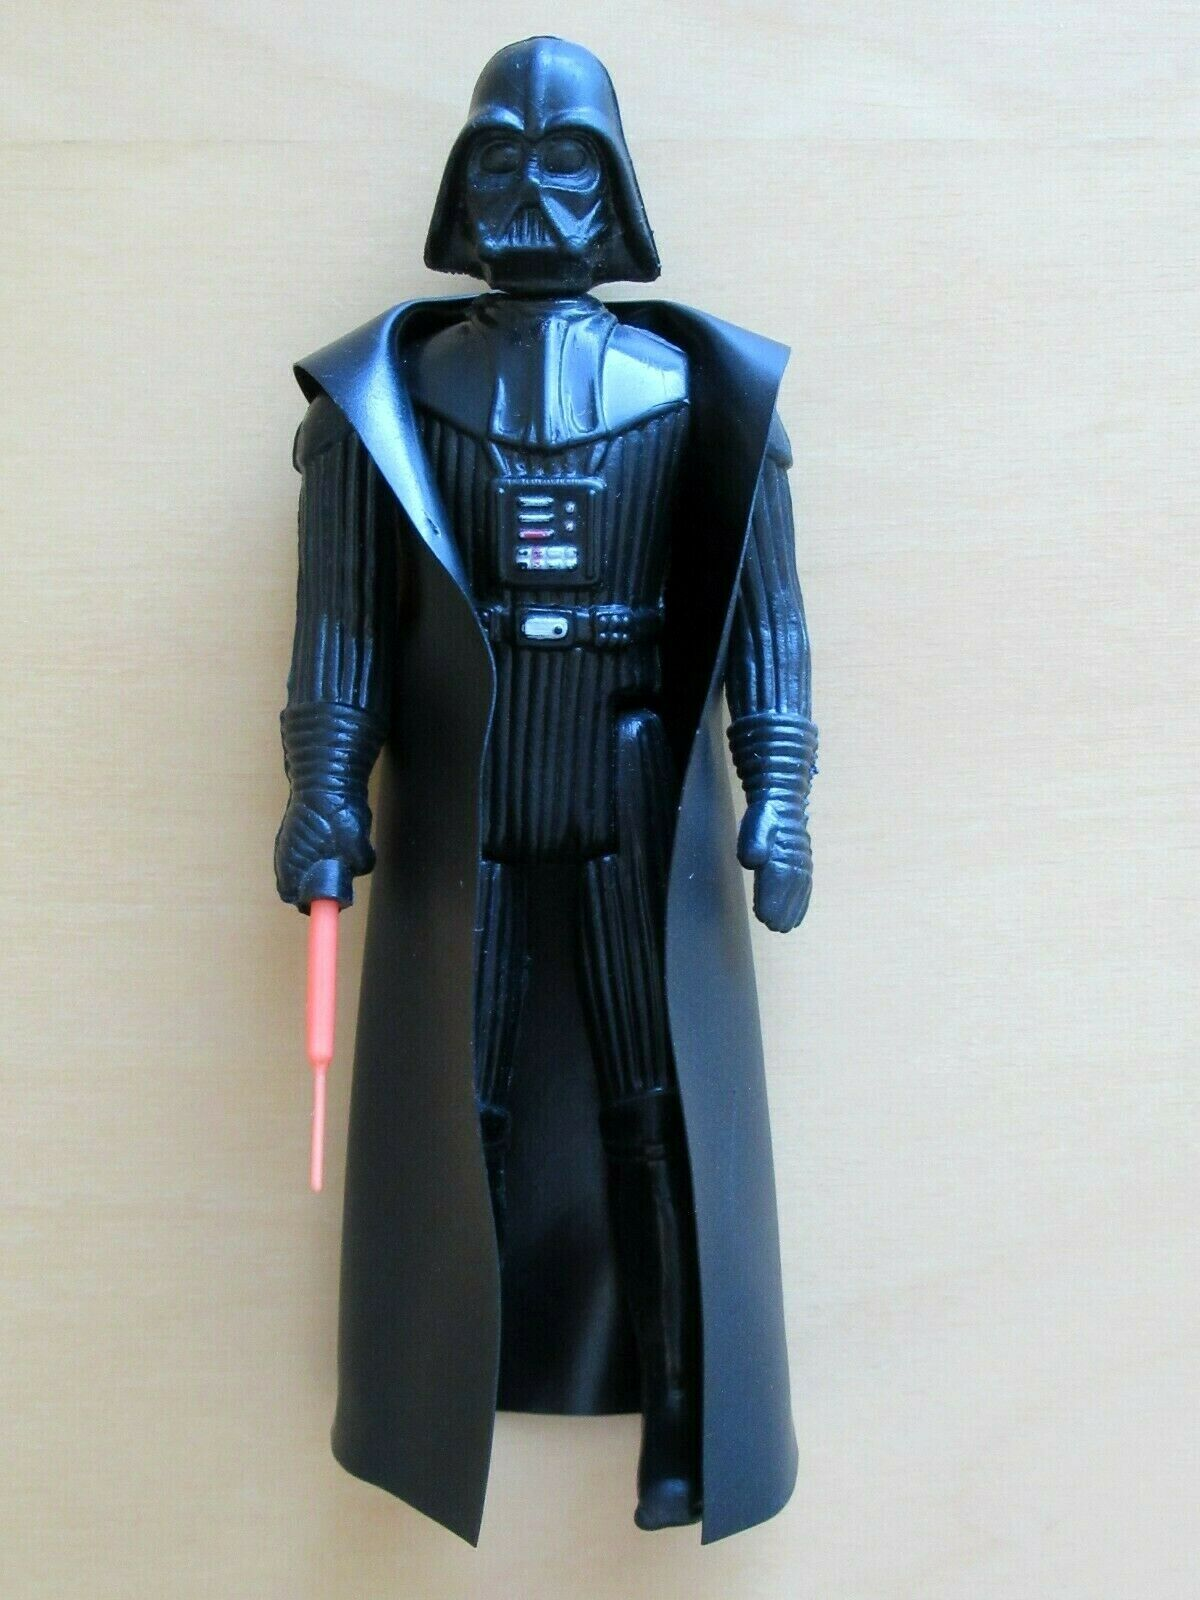 Vintage Star Wars Darth Vader Taiwan NEAR Comme neuf COMPLET 1977 Action Figure ORIG